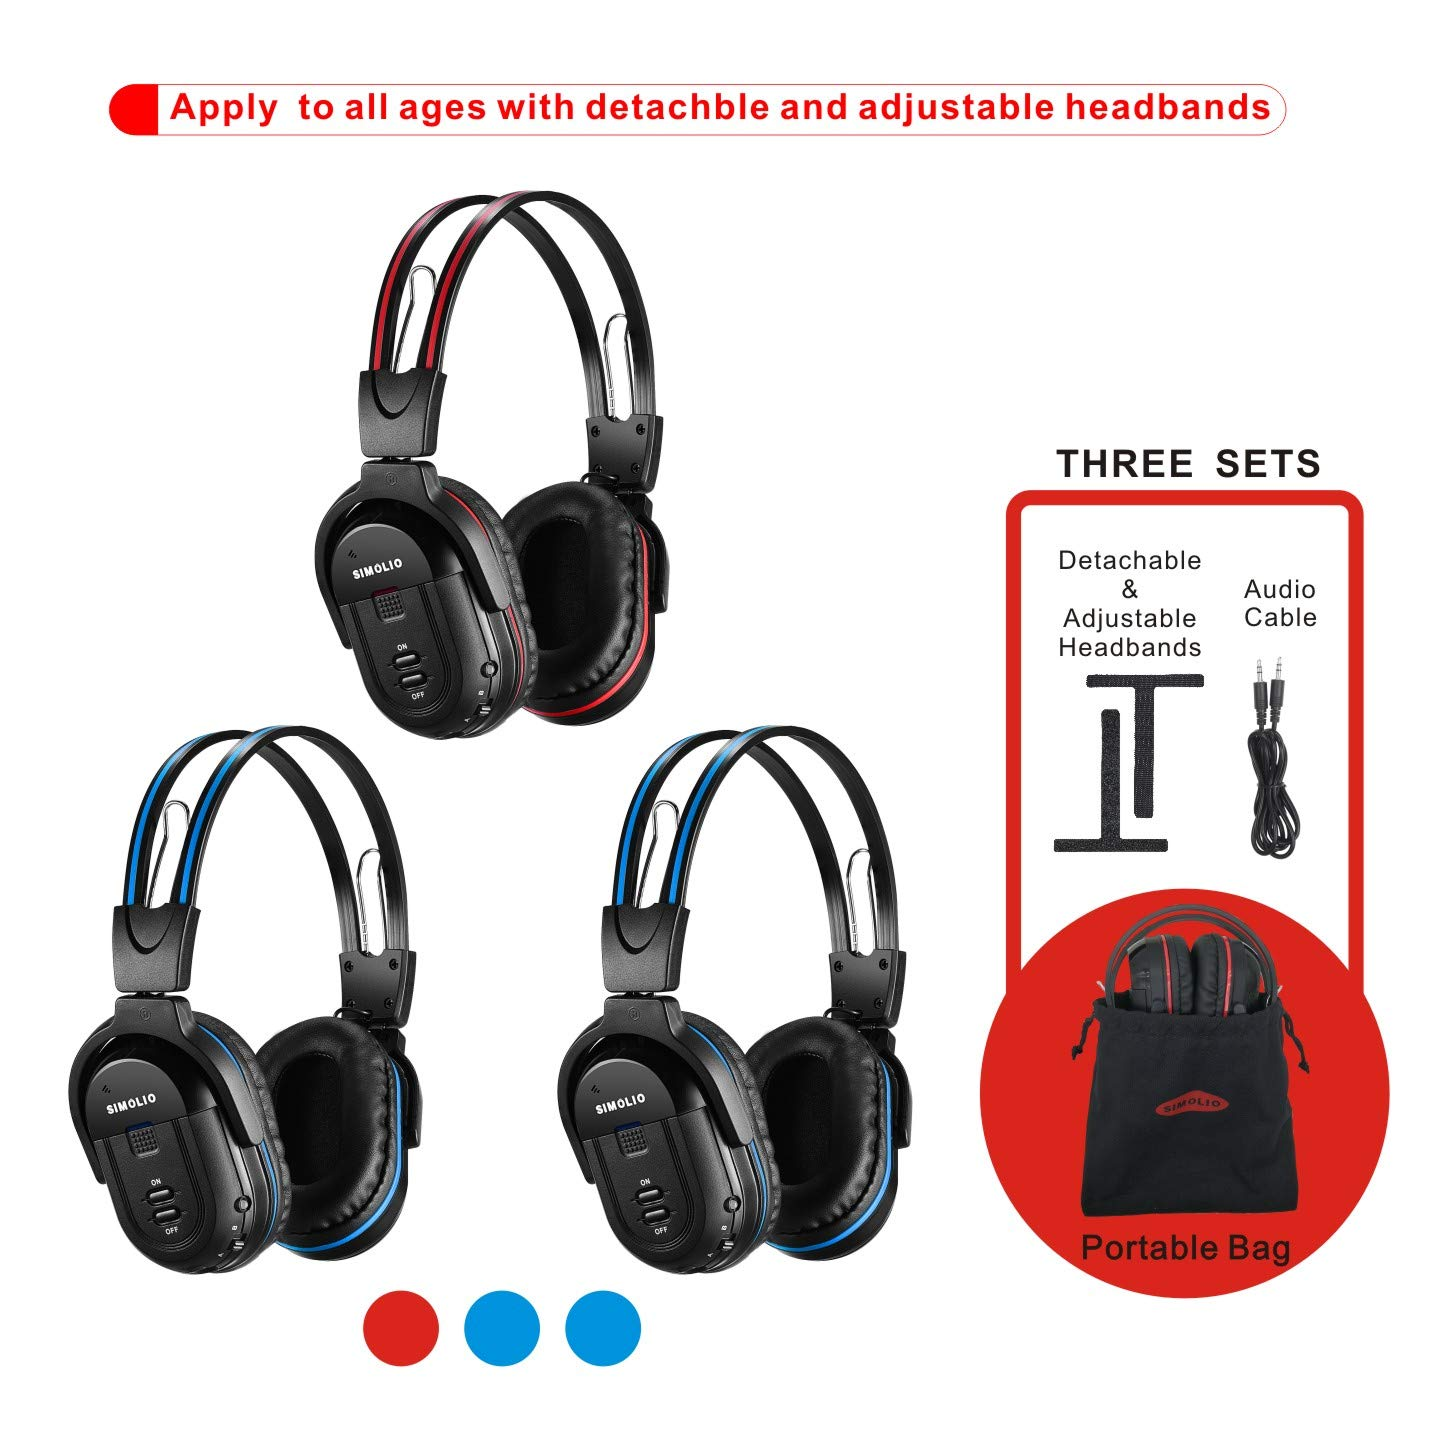 3 Pack of Wireless Car Headphones, Wireless Headphones for Kids, in Car Wireless Headphones with Travelling Bag for Universal Rear Entertainment System, 2 Channel Wireless Headphones by SIMOLIO